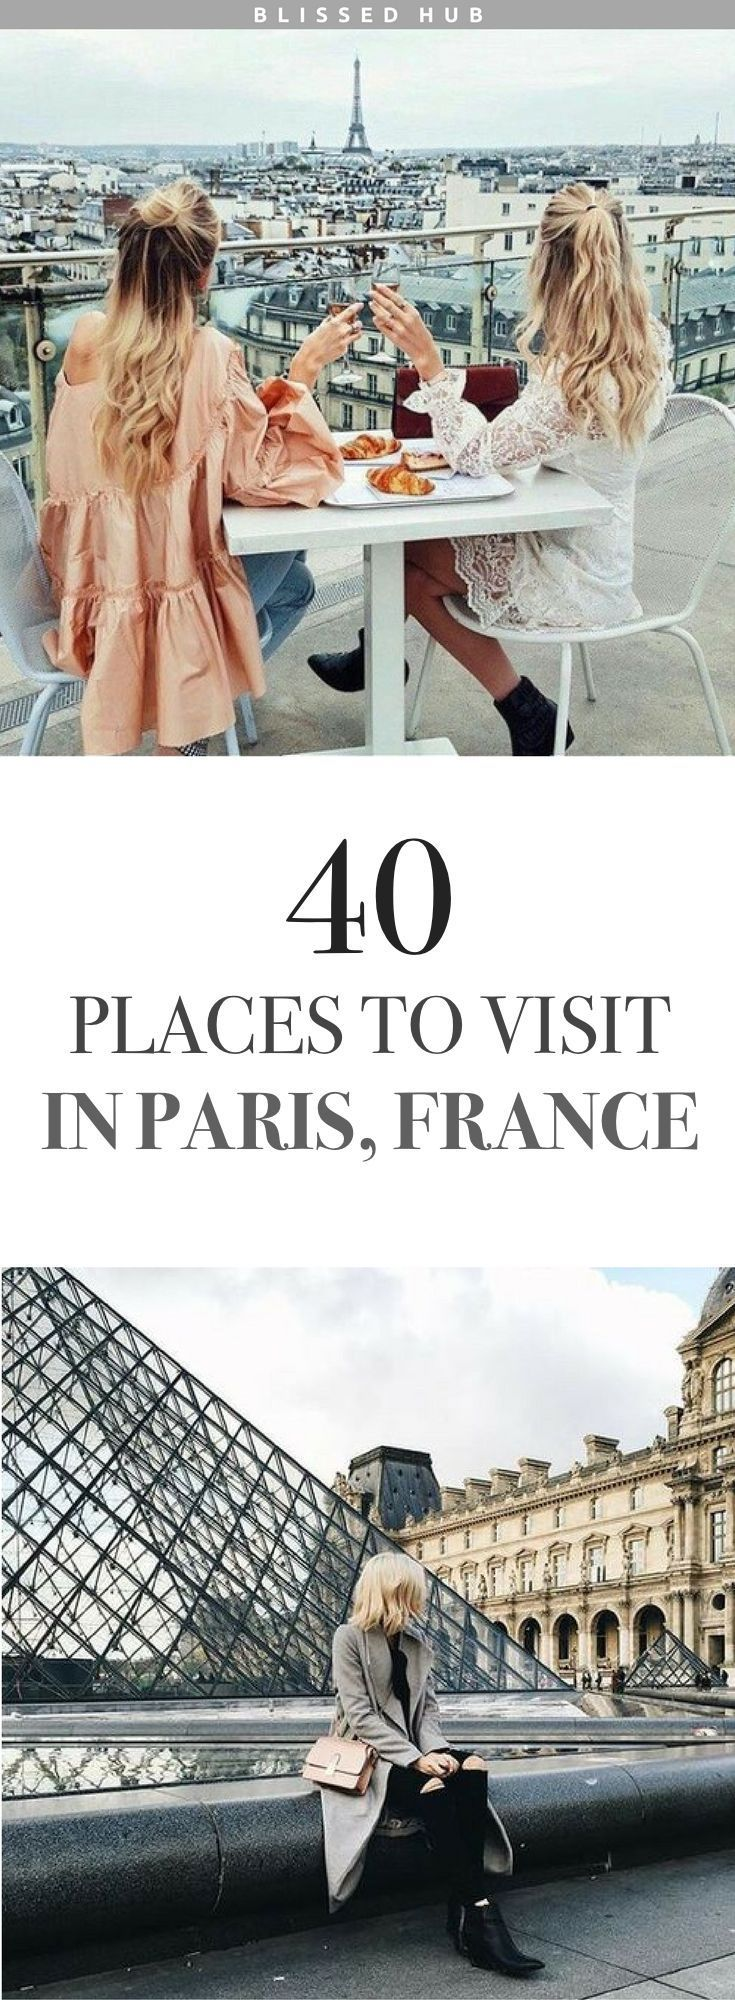 40 PLACES TO VIST IN PARIS FRANCE   paris, france, eiffel tower, the lourve, vacation, holiday ideas, places to go   Paris is so much for than the typical Eiffel Tower, who knew there were so many exquisite attractions!